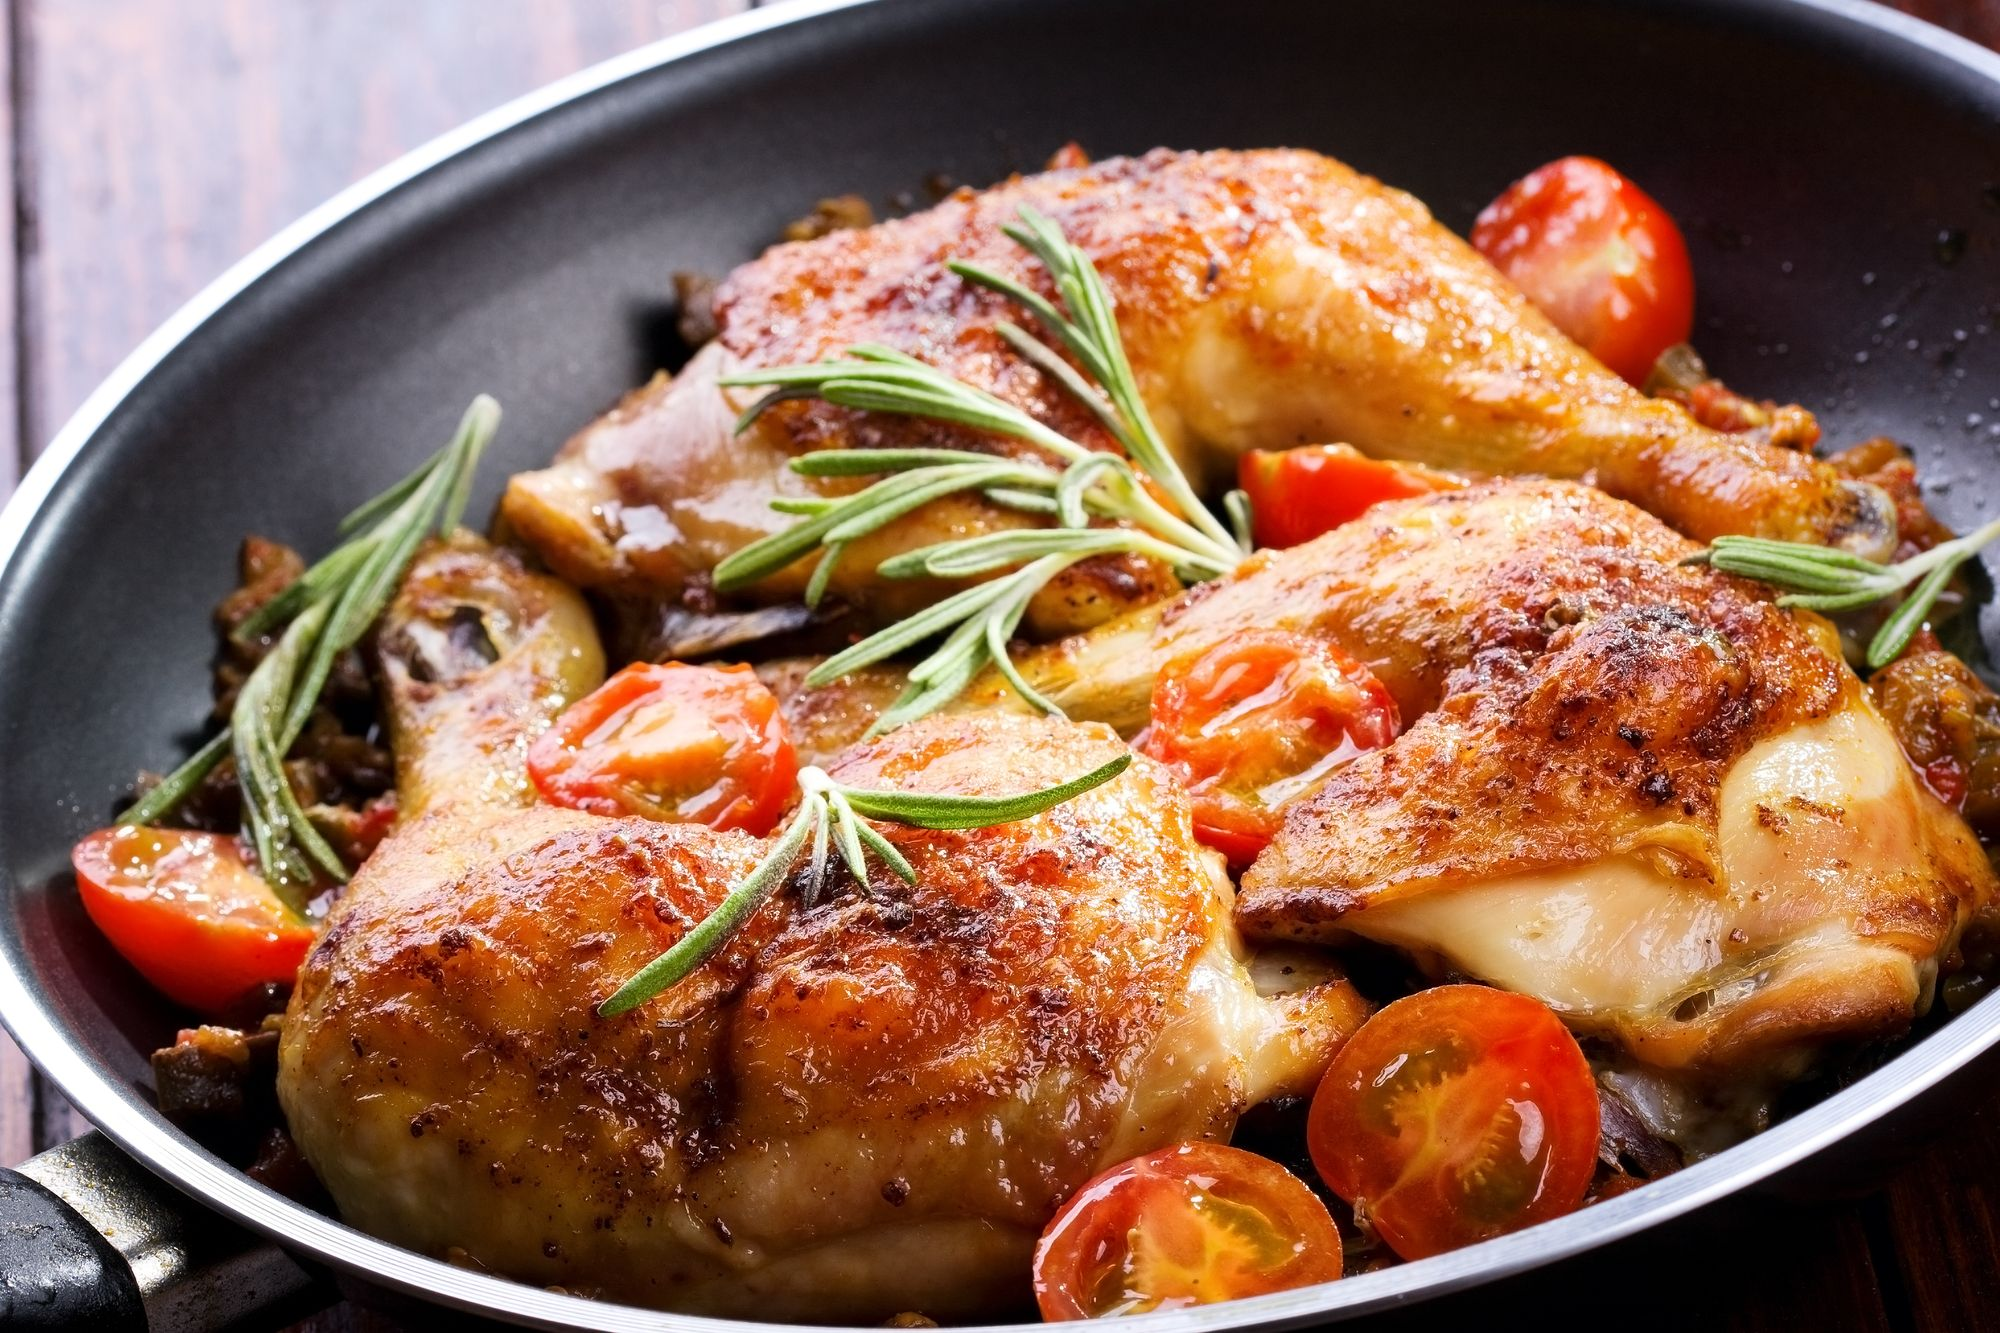 Classic Mediterranean Chicken and Vegetables